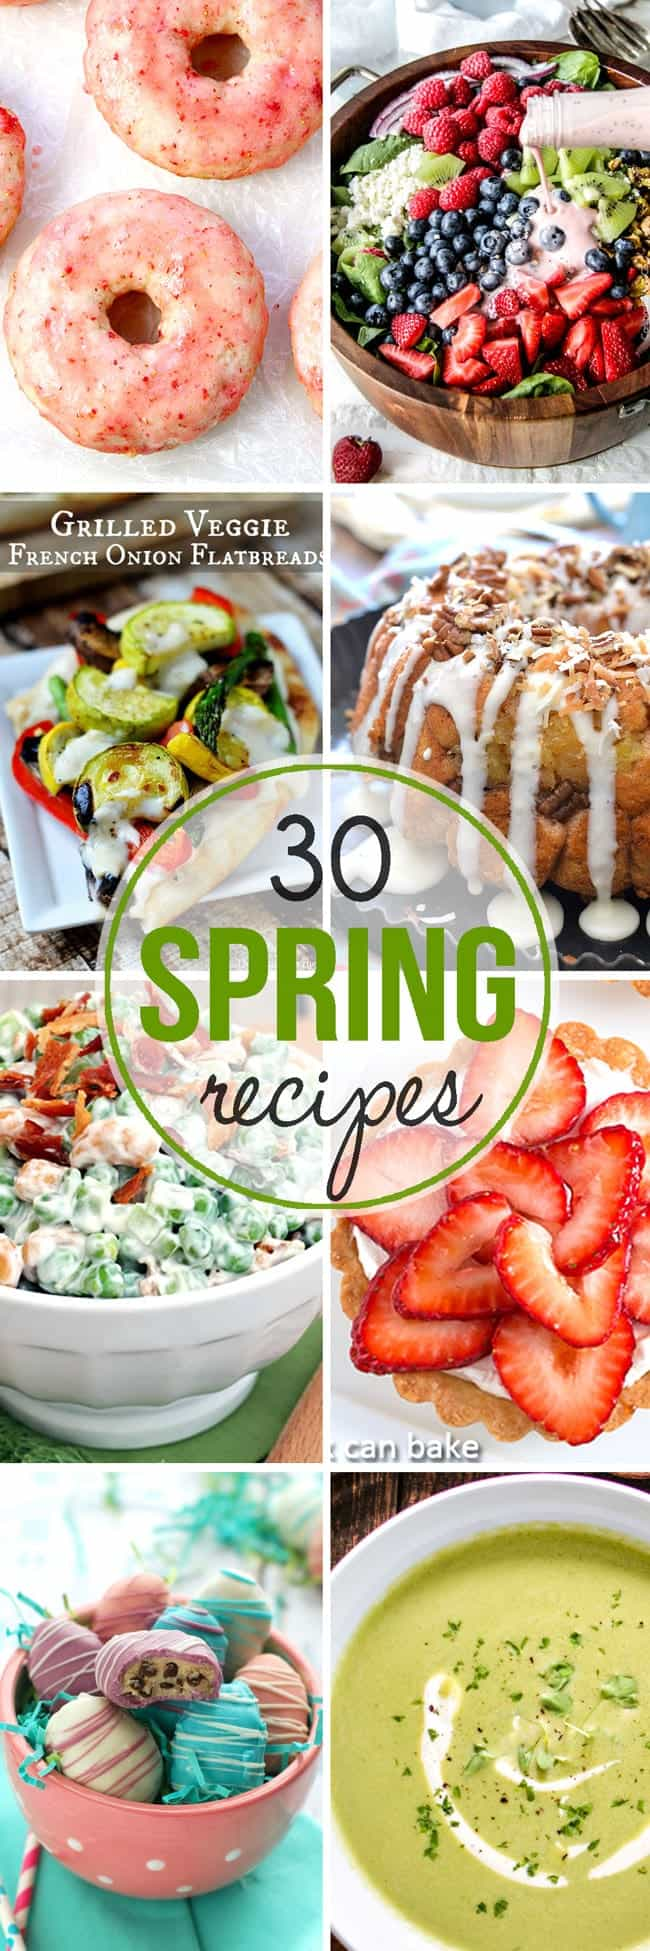 30 Spring Recipes you have to try! From dips, to salads, to soups and desserts this round features the best flavors of spring!